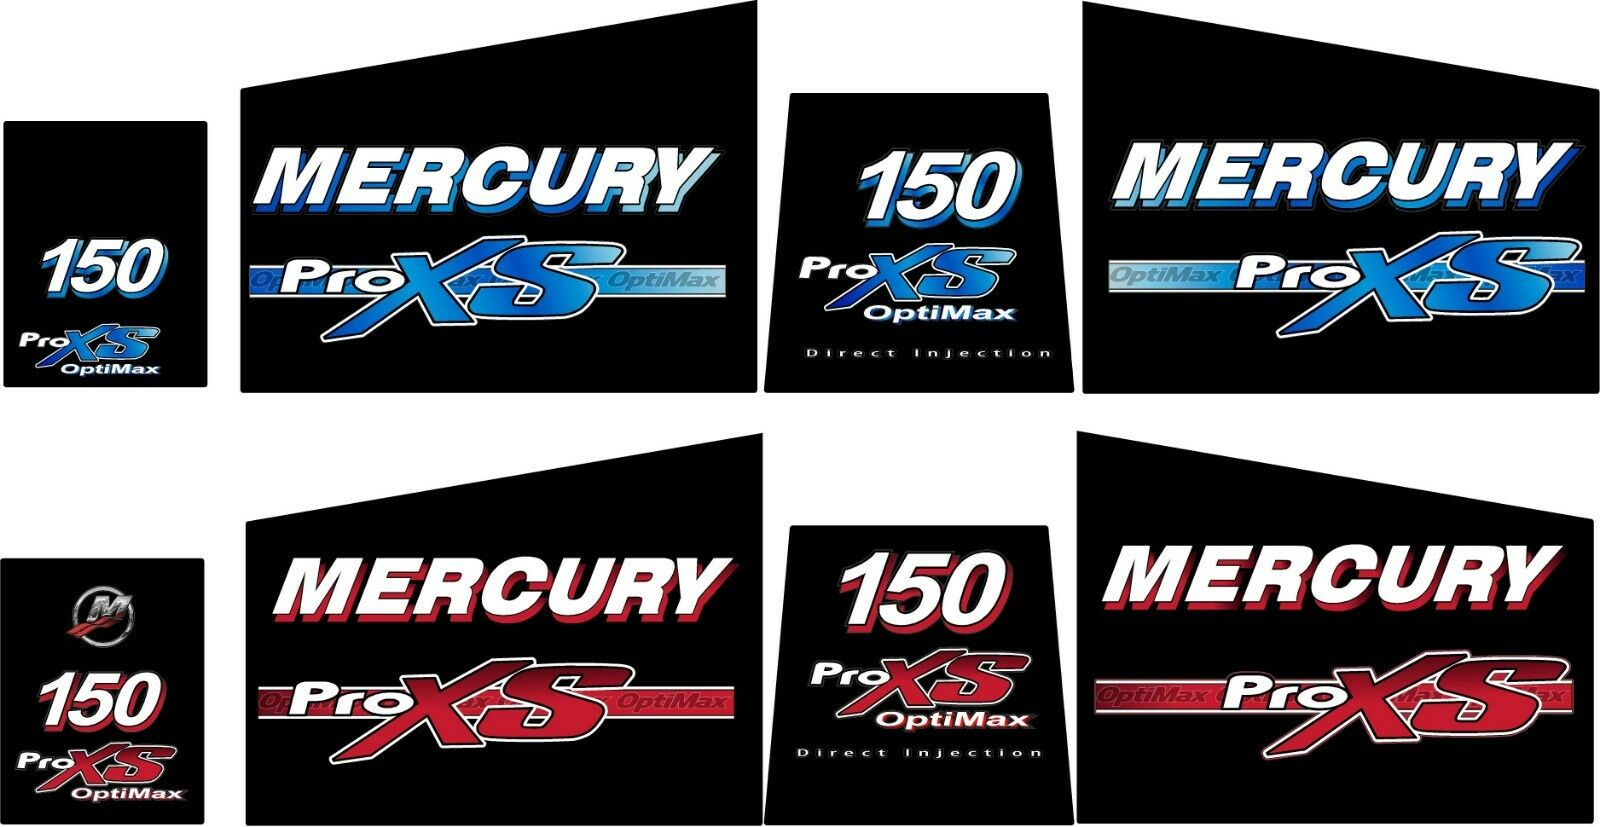 Mercury Pro Xs 150 Decal Kit